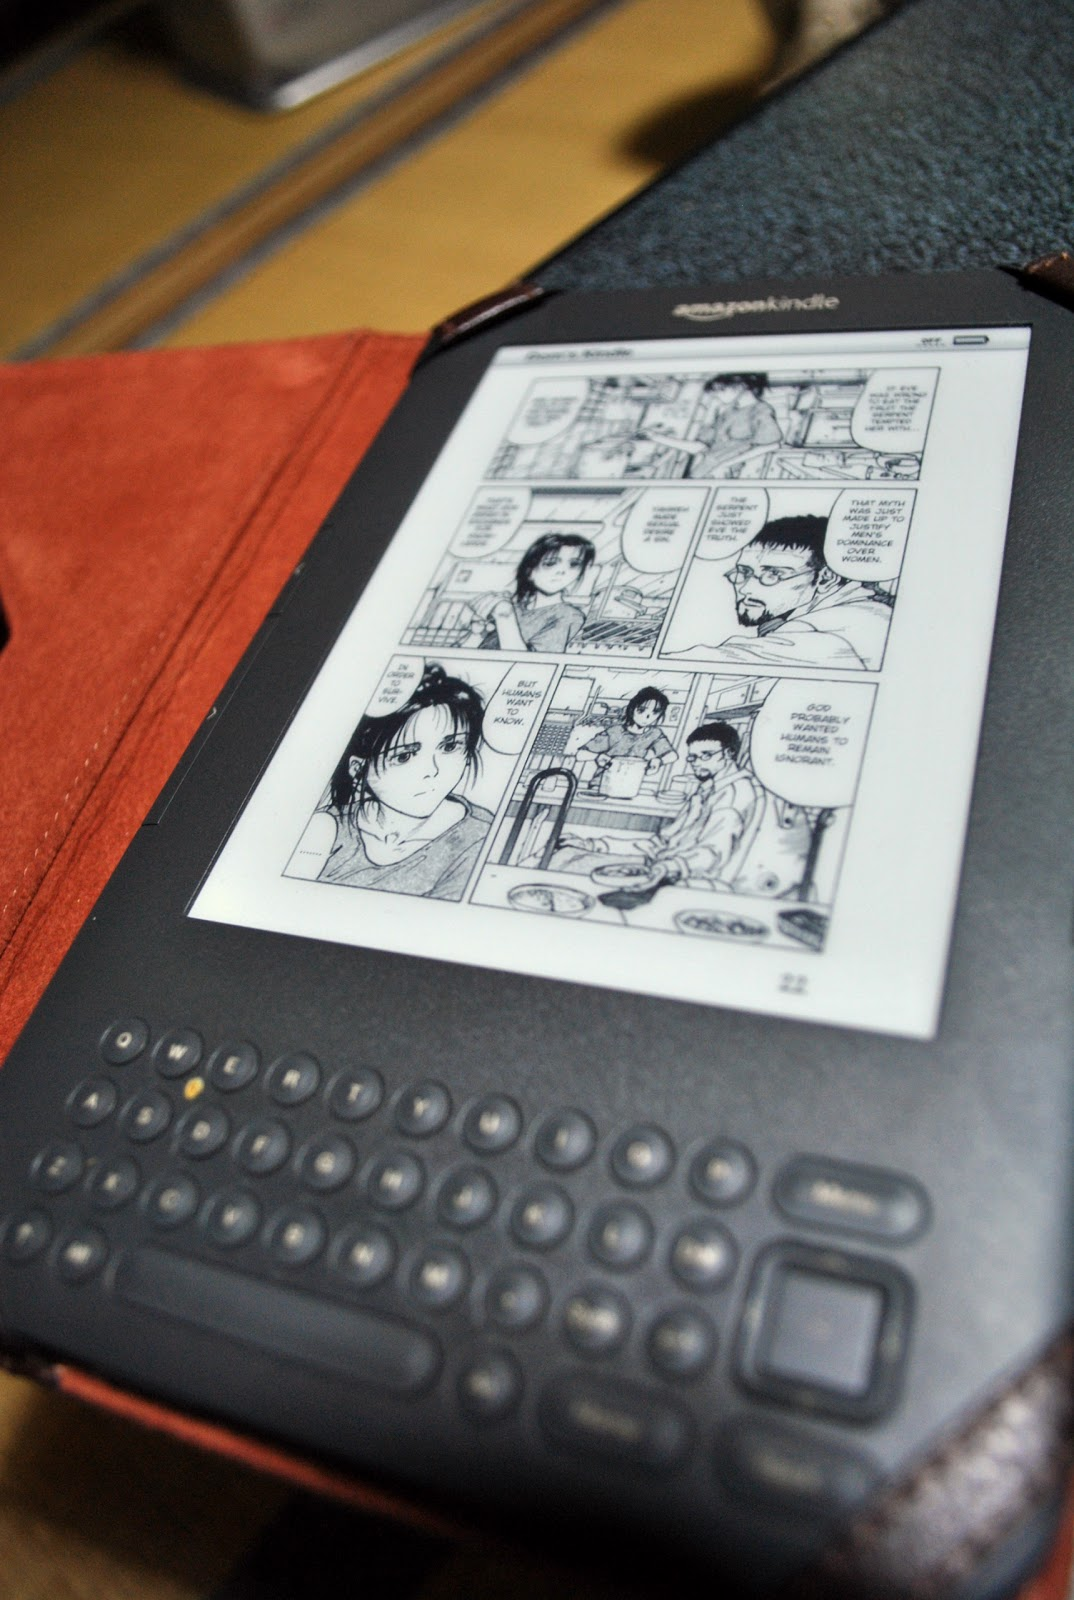 AccessJ: Using an Amazon Kindle 3/4 Part 2: Reading Manga